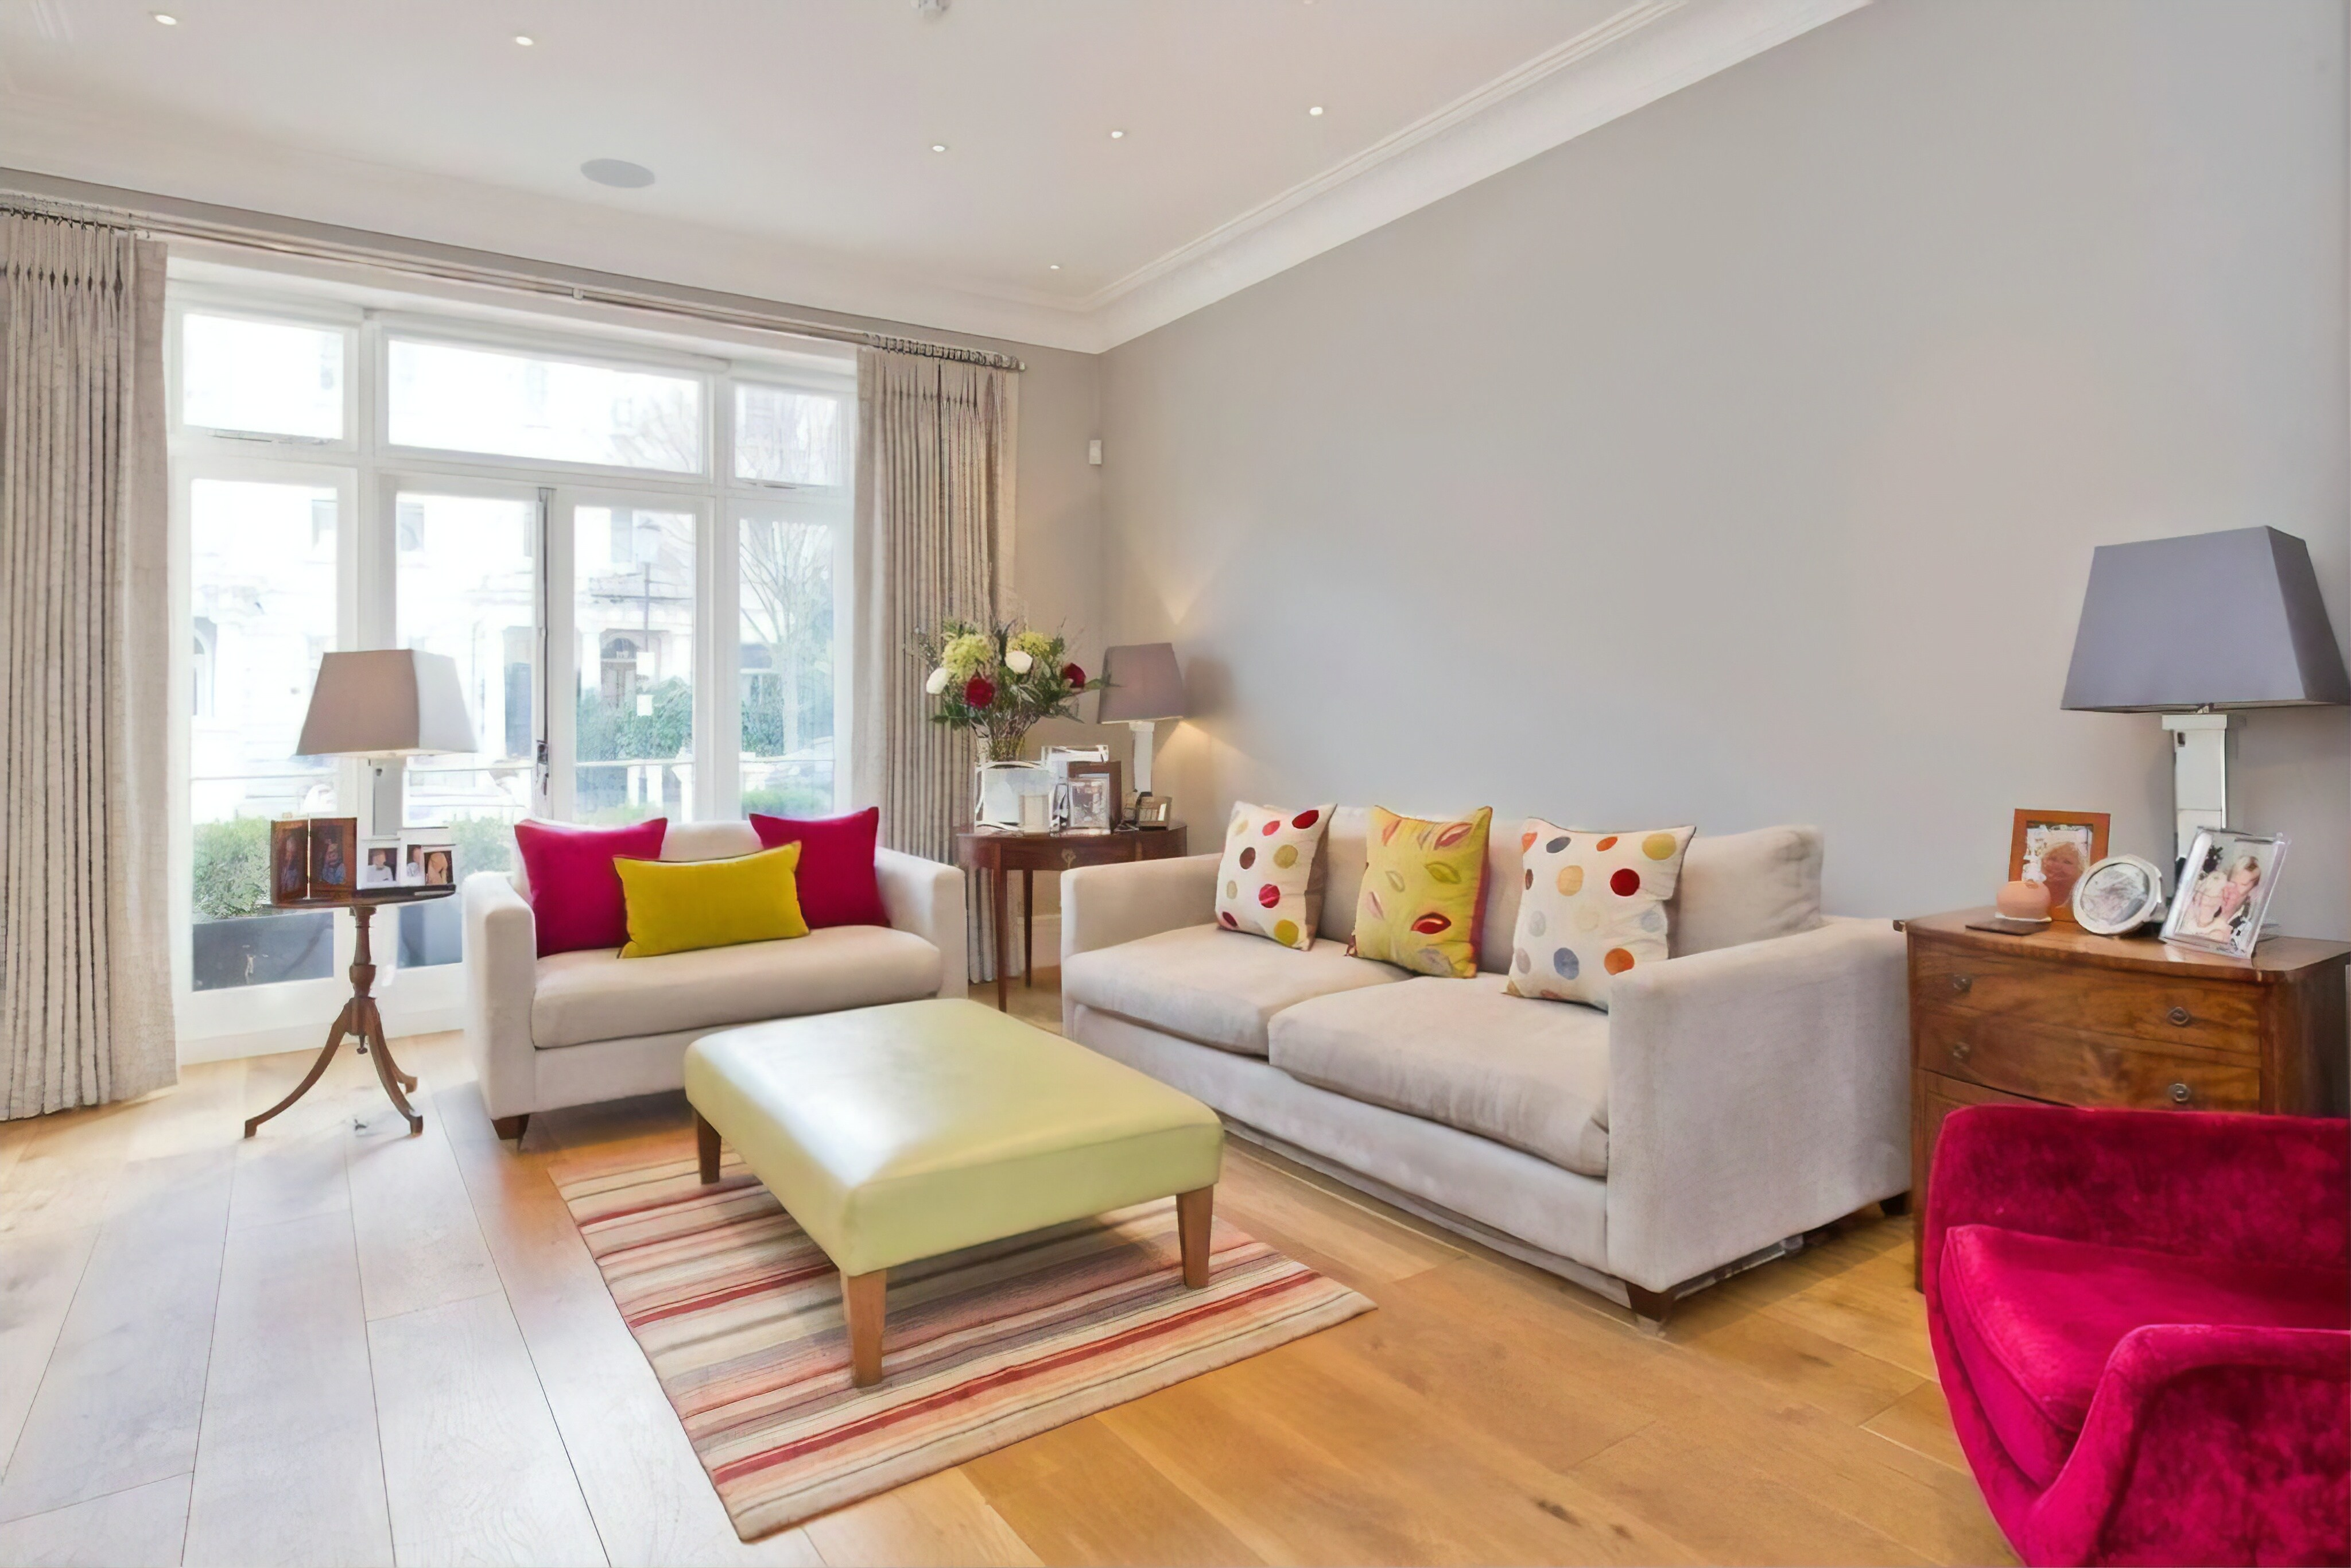 Property Image 1 - Stunning 4-bed house in Notting Hill w/ garden!